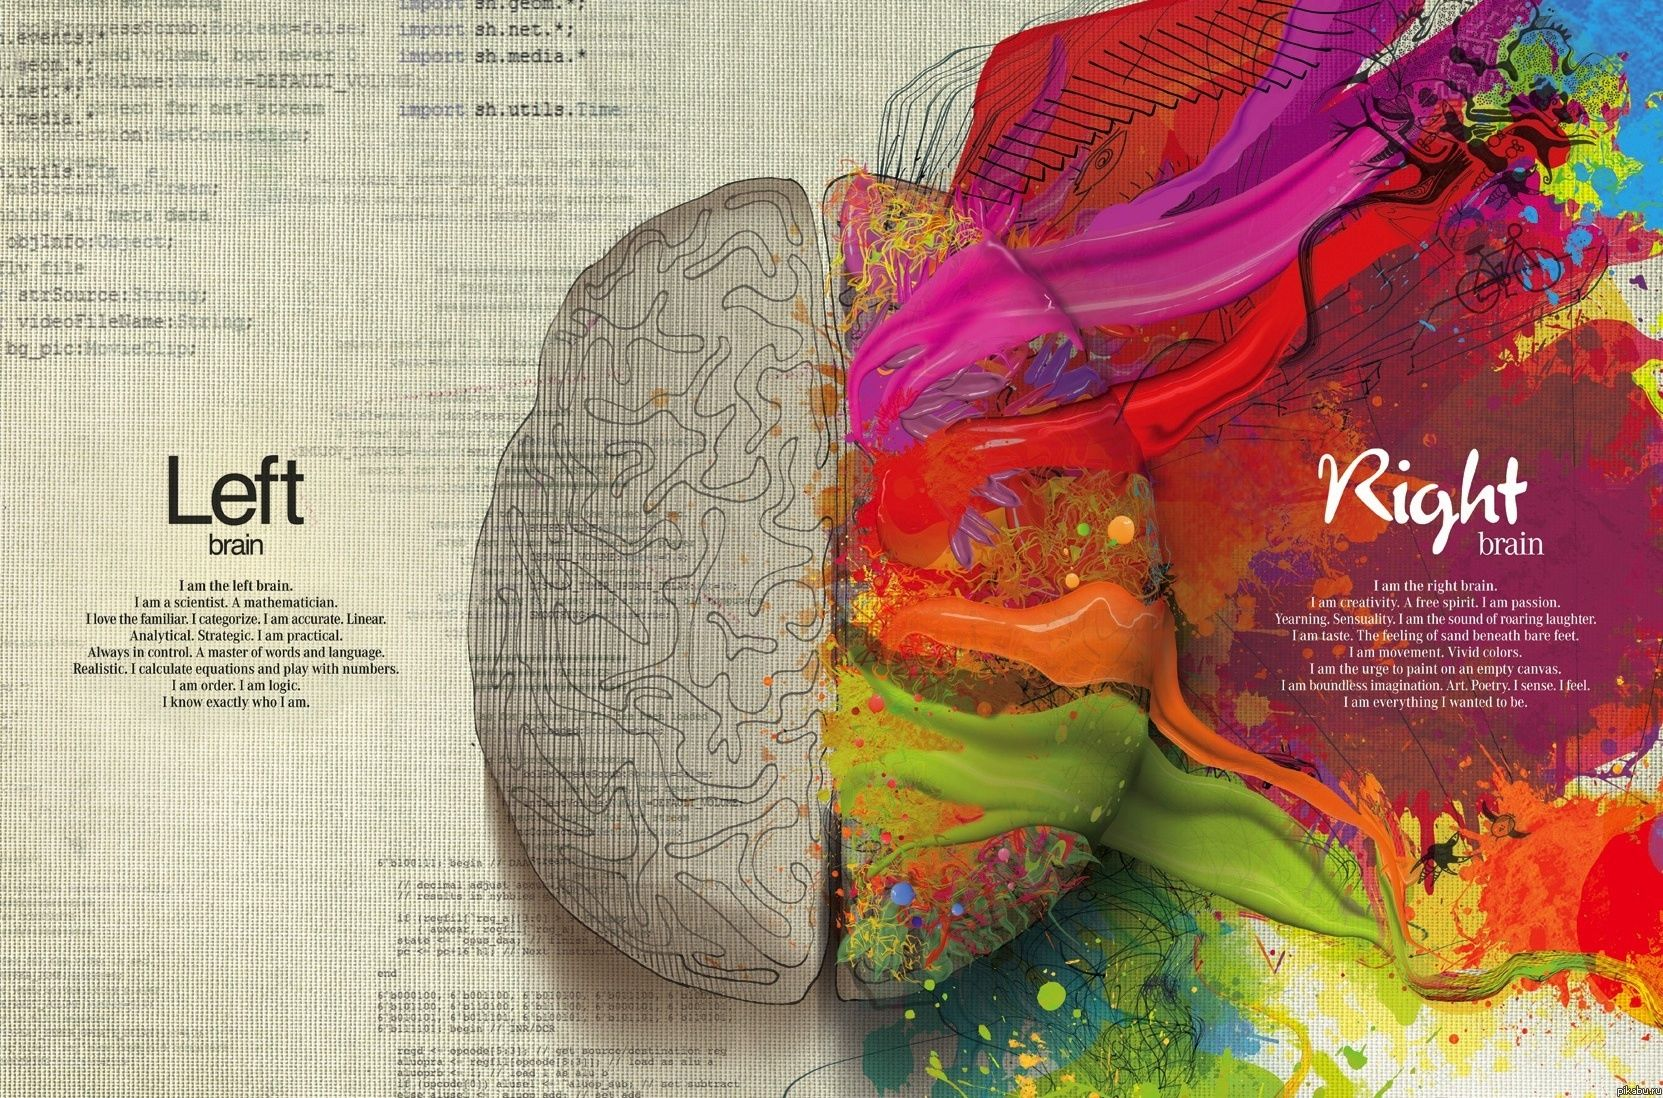 Drawing on emotional ties between the left and right brain. This beautiful illustration spread shows creativity, free spirit and passion of the right brain vs. the familiar, accurate and linear.